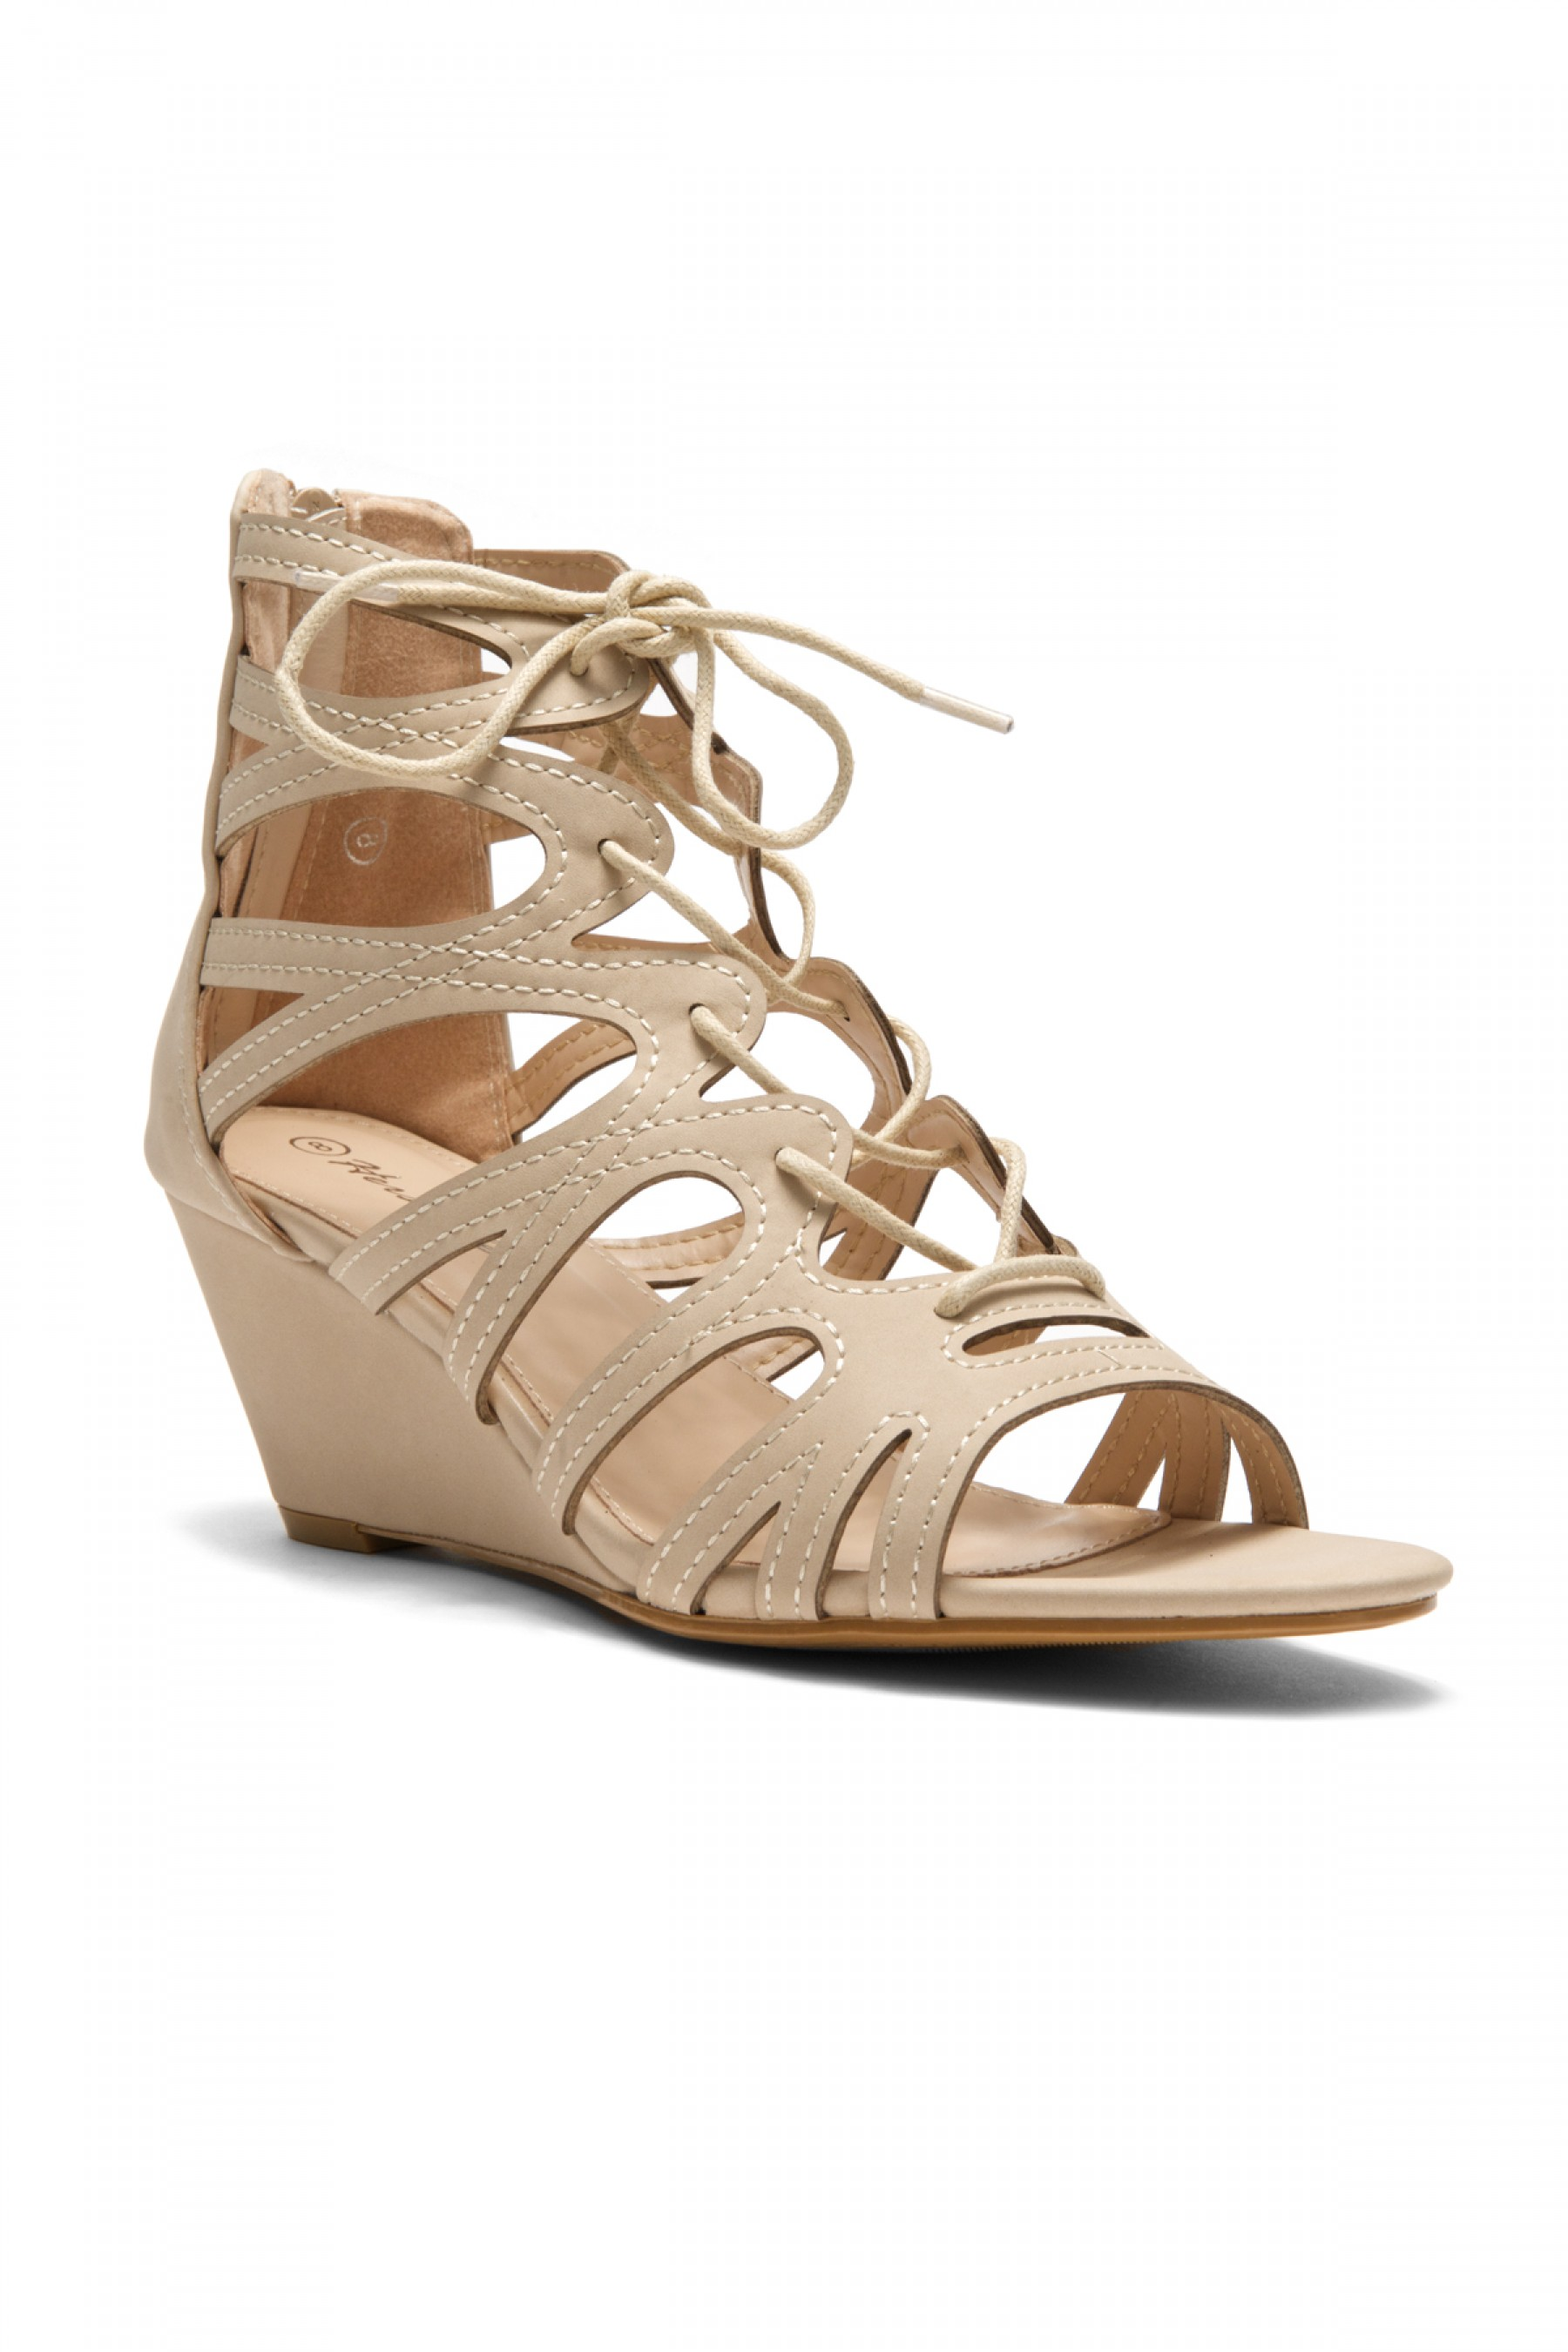 HerStyle Women's Manmade Antella 3-inch Gladiator Style Wedge Sandal with Lace-up Vamp (Nude)